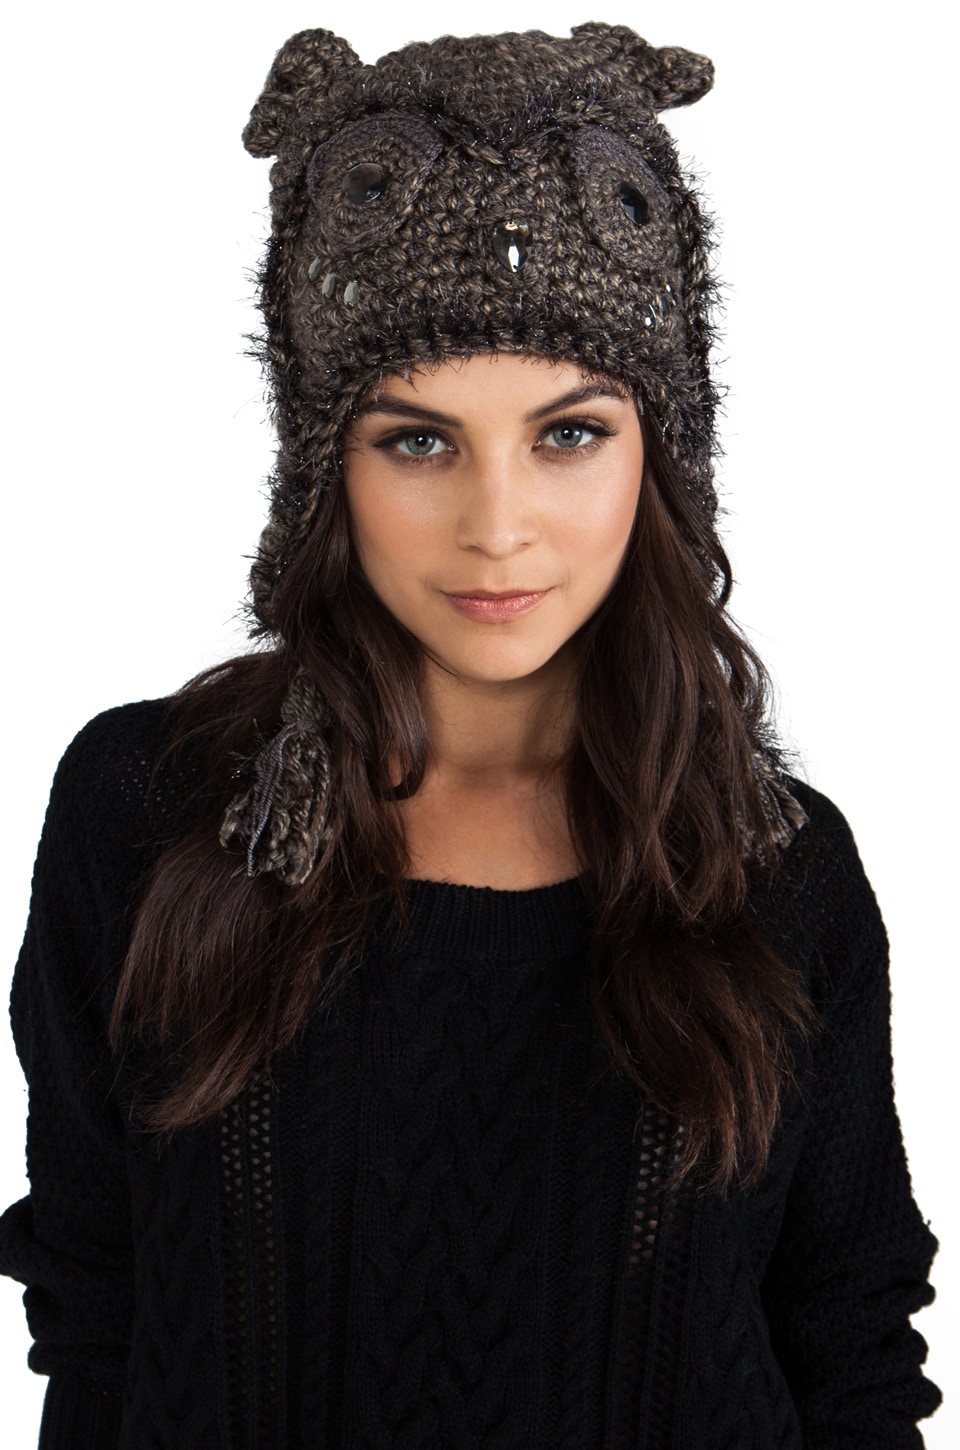 Anna Sui Jeweled Animal Accessories Hat in Light Brown Metallic